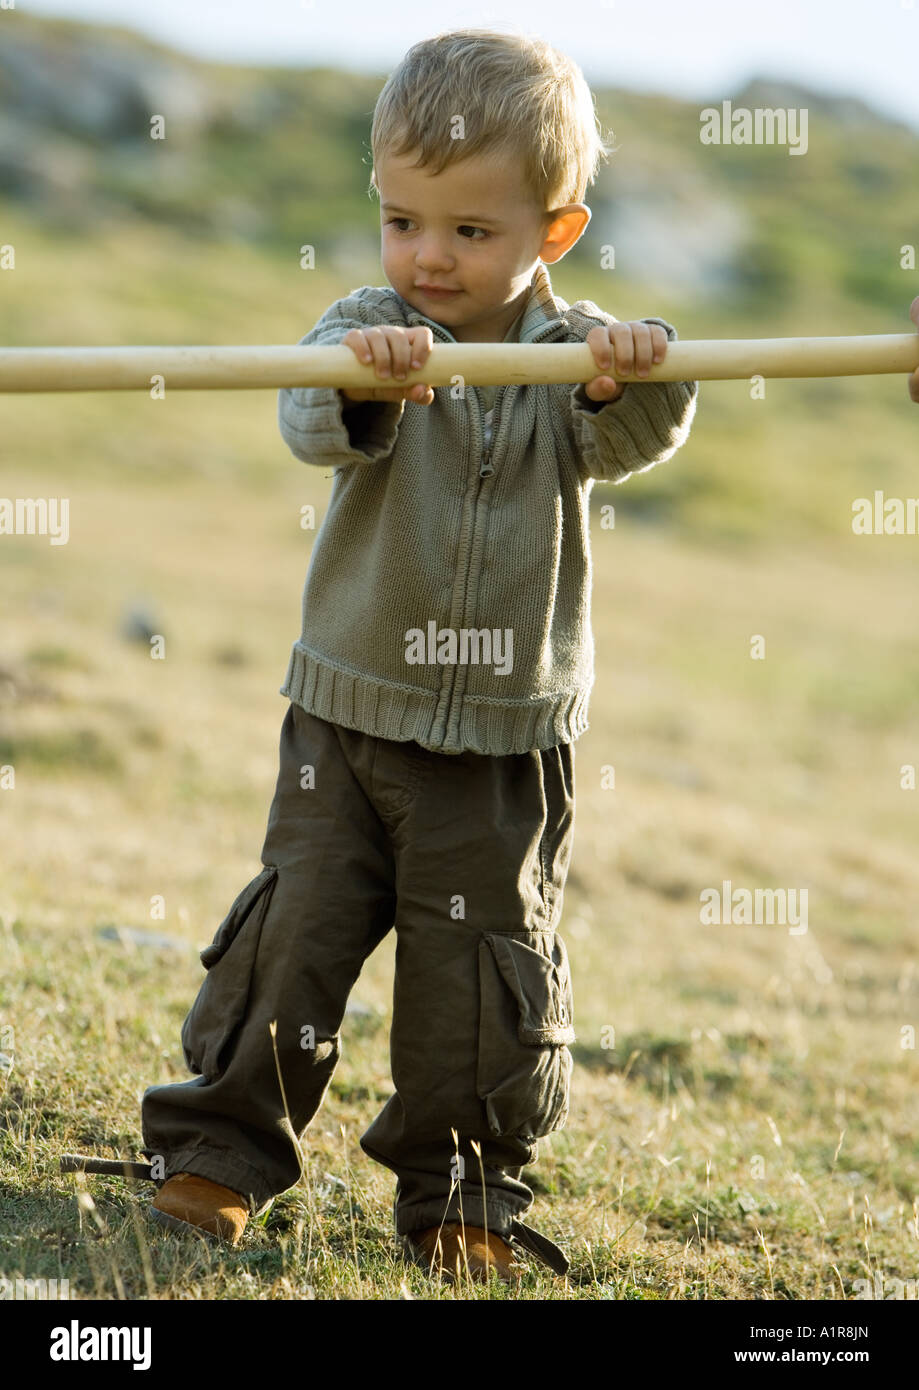 Child holding on to wooden stick - Stock Image